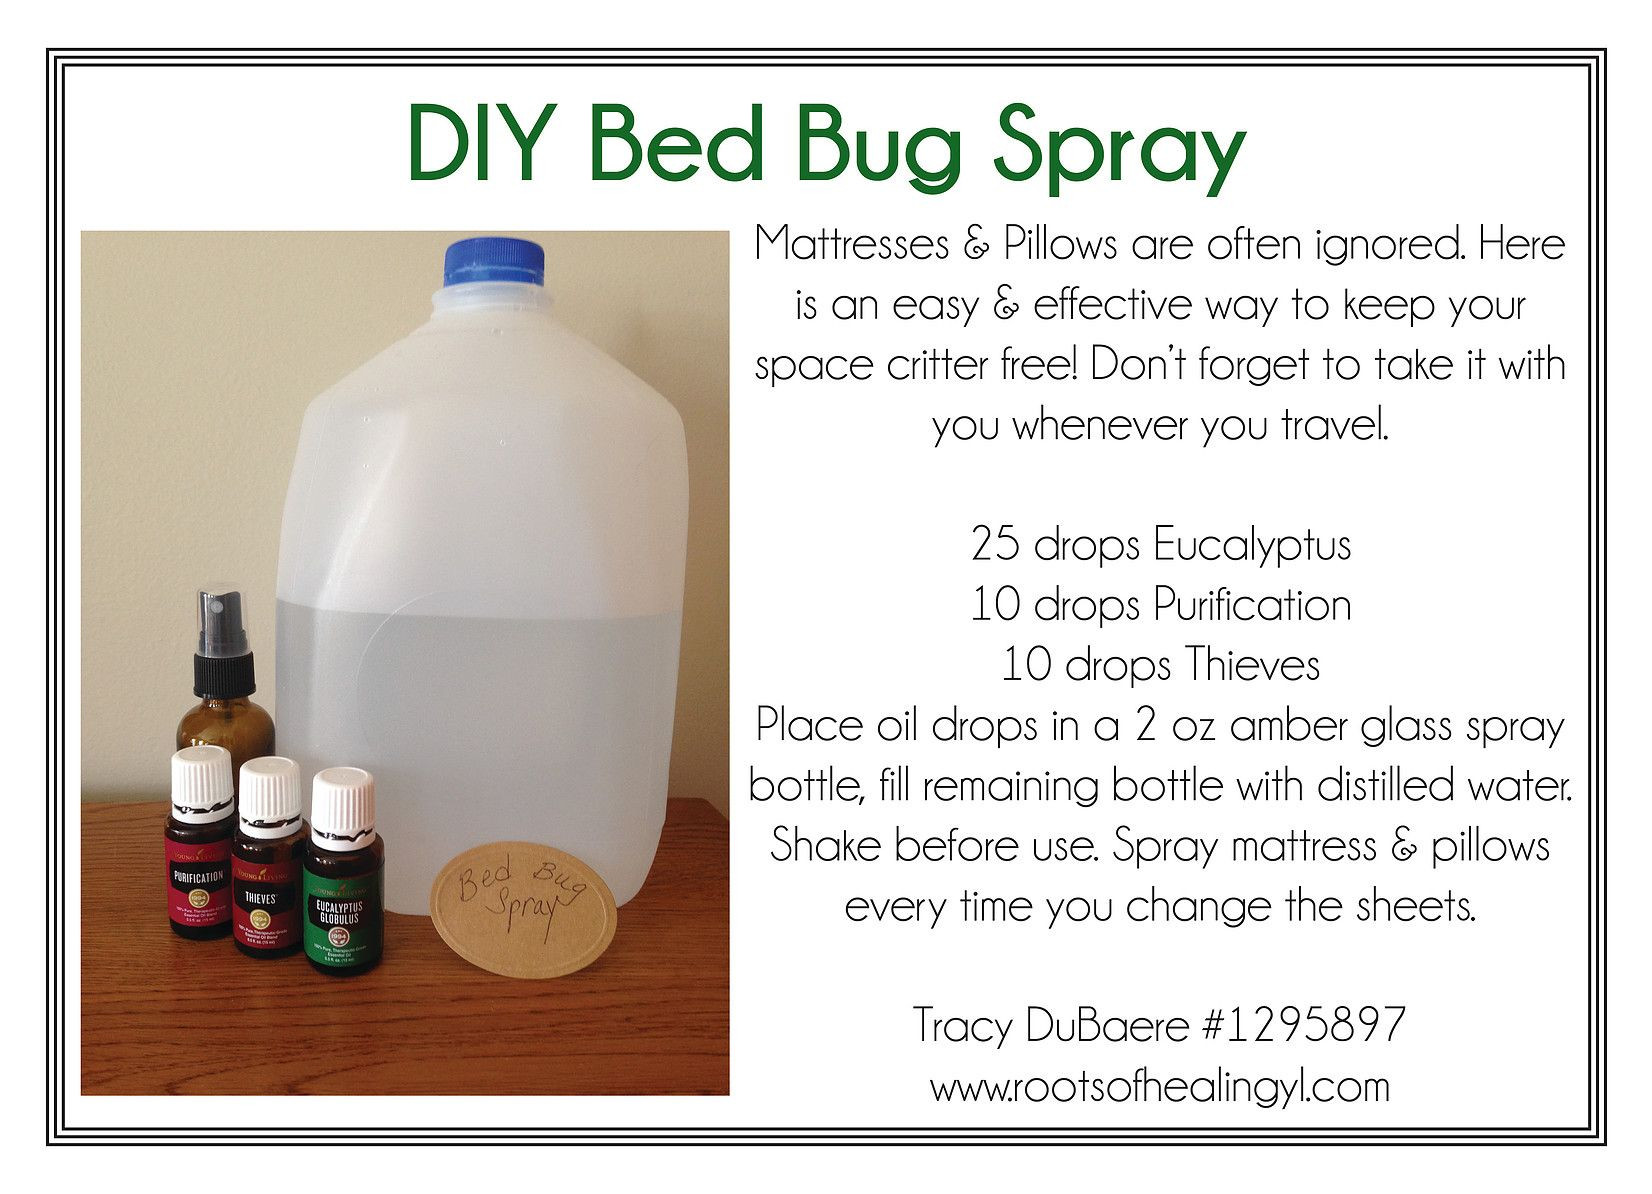 Best ideas about Bed Bug Repellent DIY . Save or Pin DIY Bed Bug Spray with Essential Oils Oils Now.